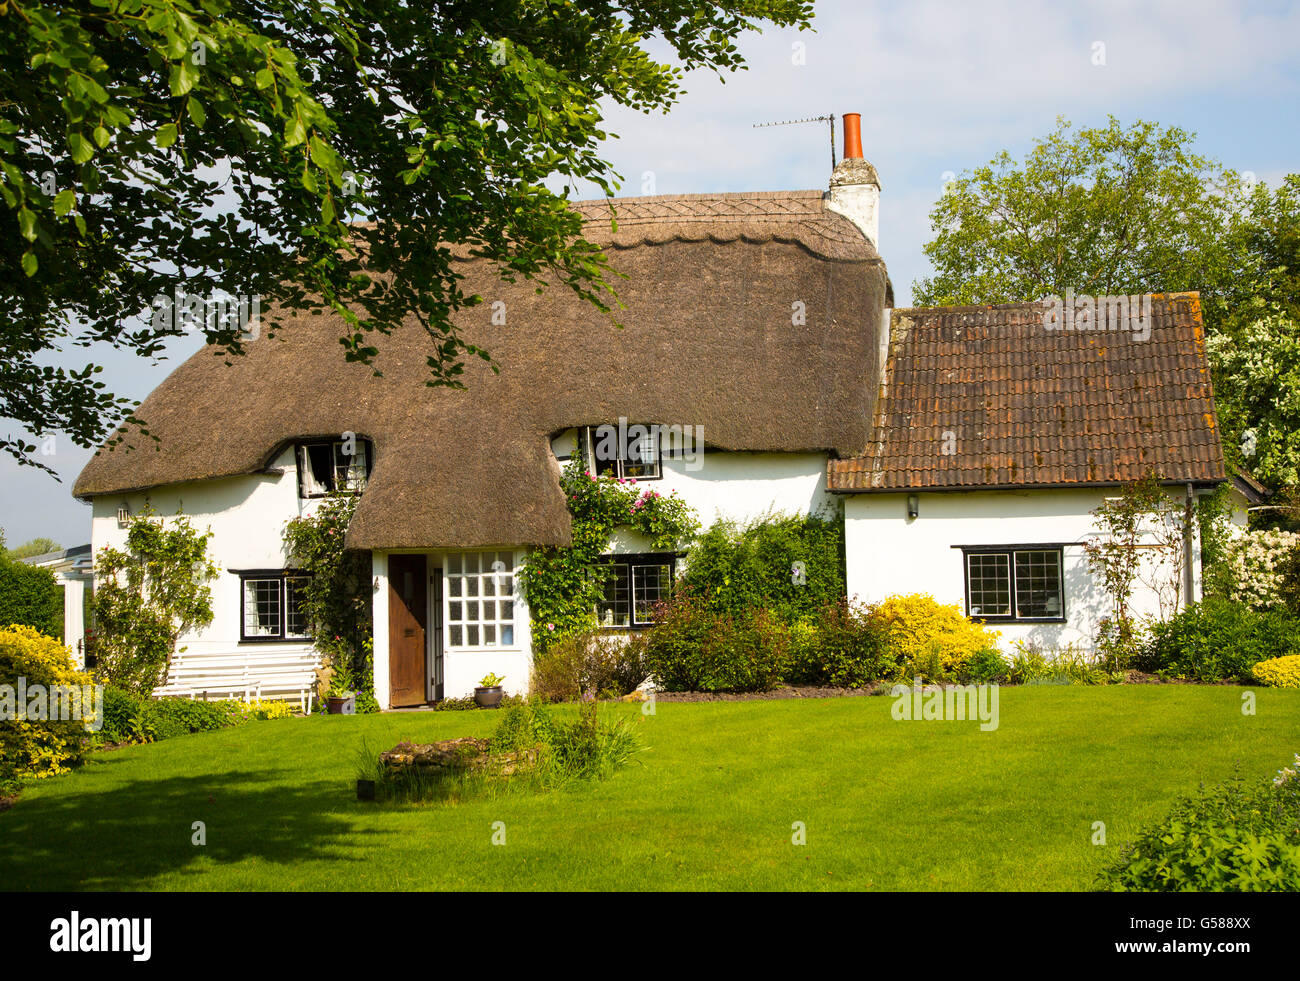 Pretty historic thatched cottage and garden, Cherhill, Wiltshire, England, UK - Stock Image